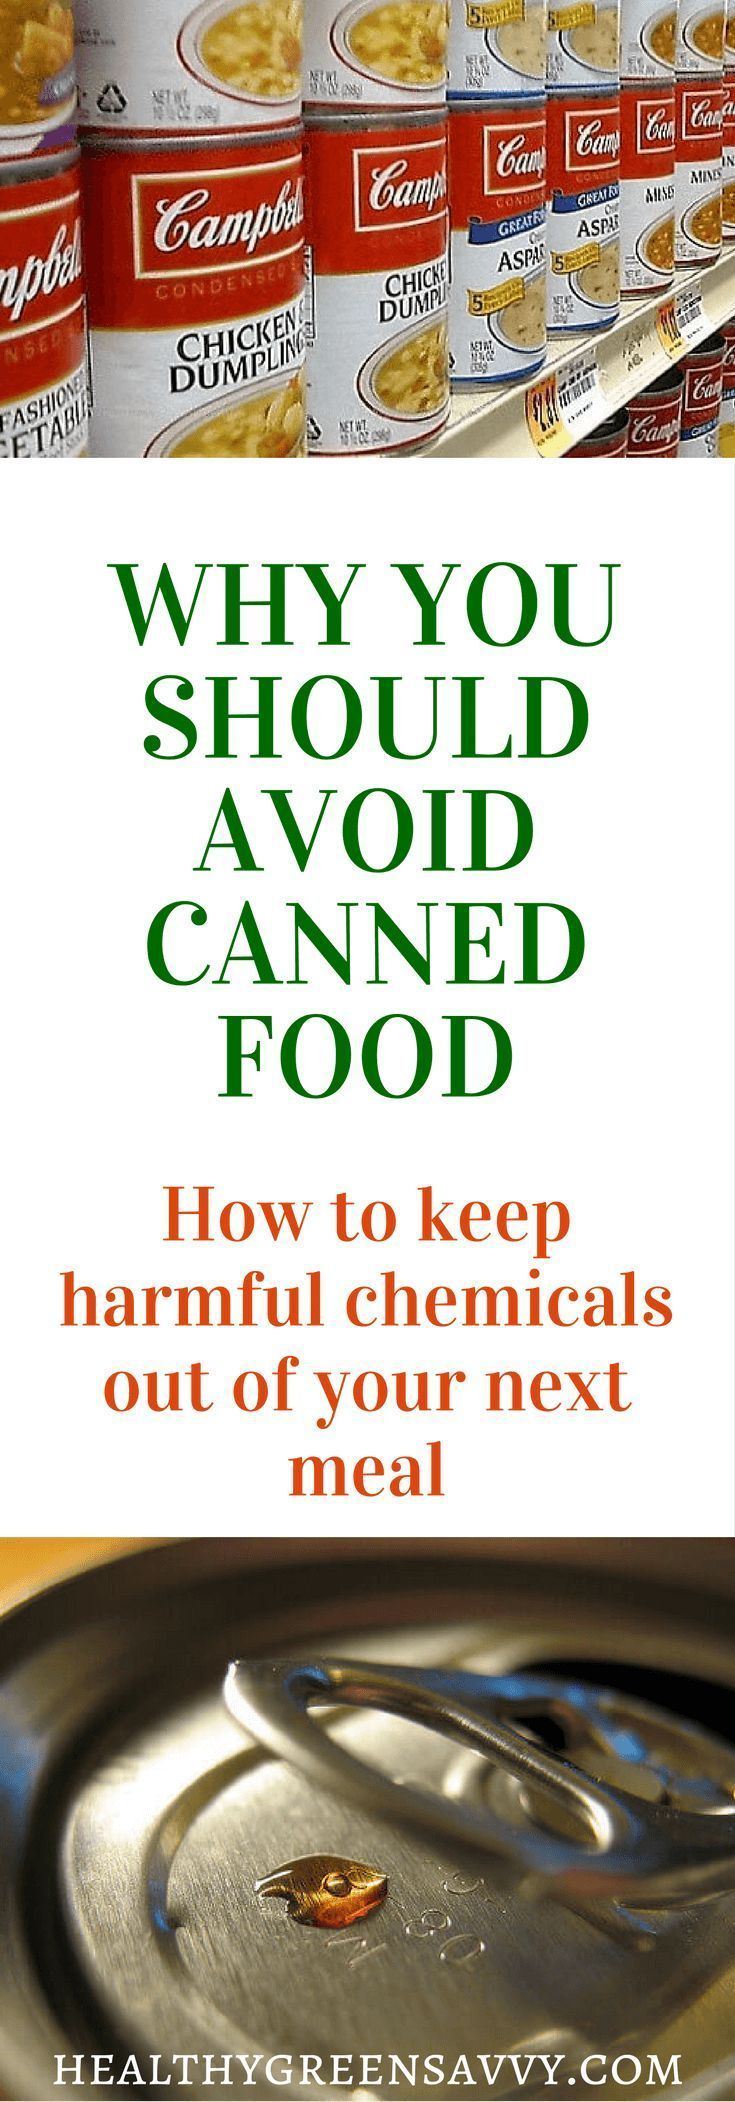 Did you know most metal cans are lined with plastic that can leach harmful chemicals into your canned food? Here's how to avoid these dangerous compounds. Click to read more or pin to save for later.